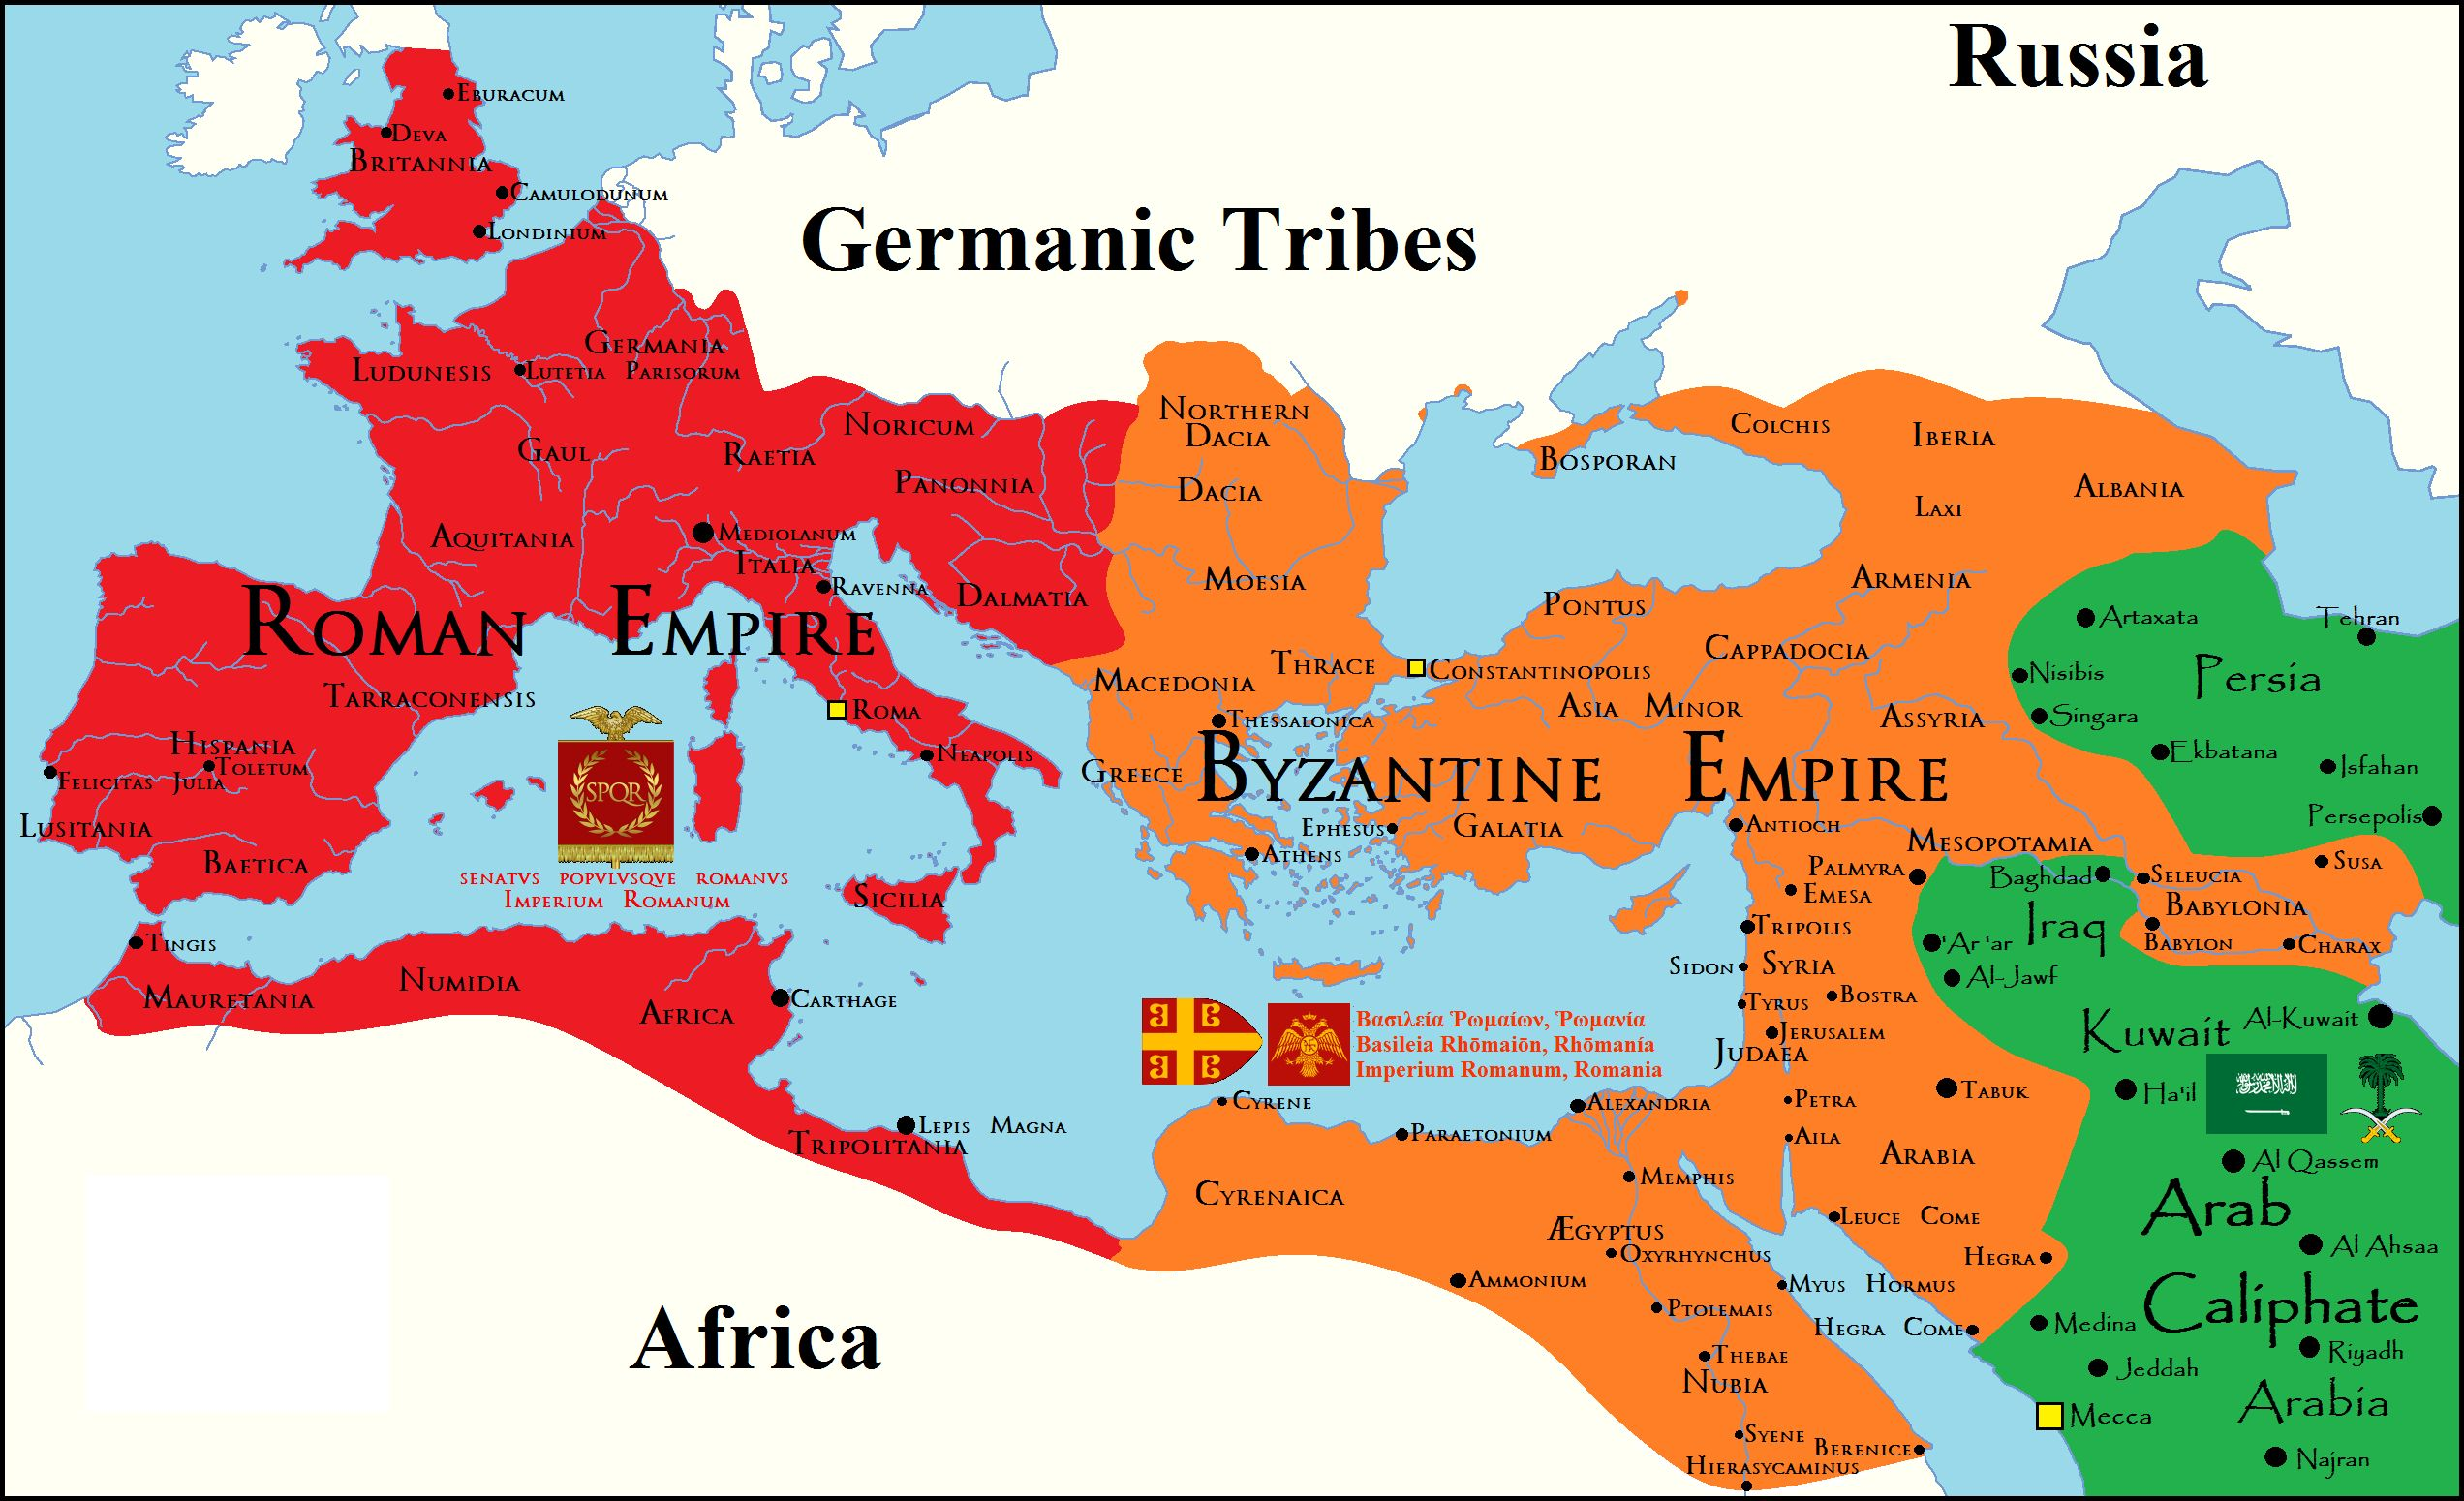 great accomplishments of the roman empire The roman empire is fucking badass, it was one of the most powerful empires in the world second only to the greater egyptian empire, until it was brought down by sexual deviants and the counted barbarians who attacked rome repeatedly because they were fucked up beasts who had no.